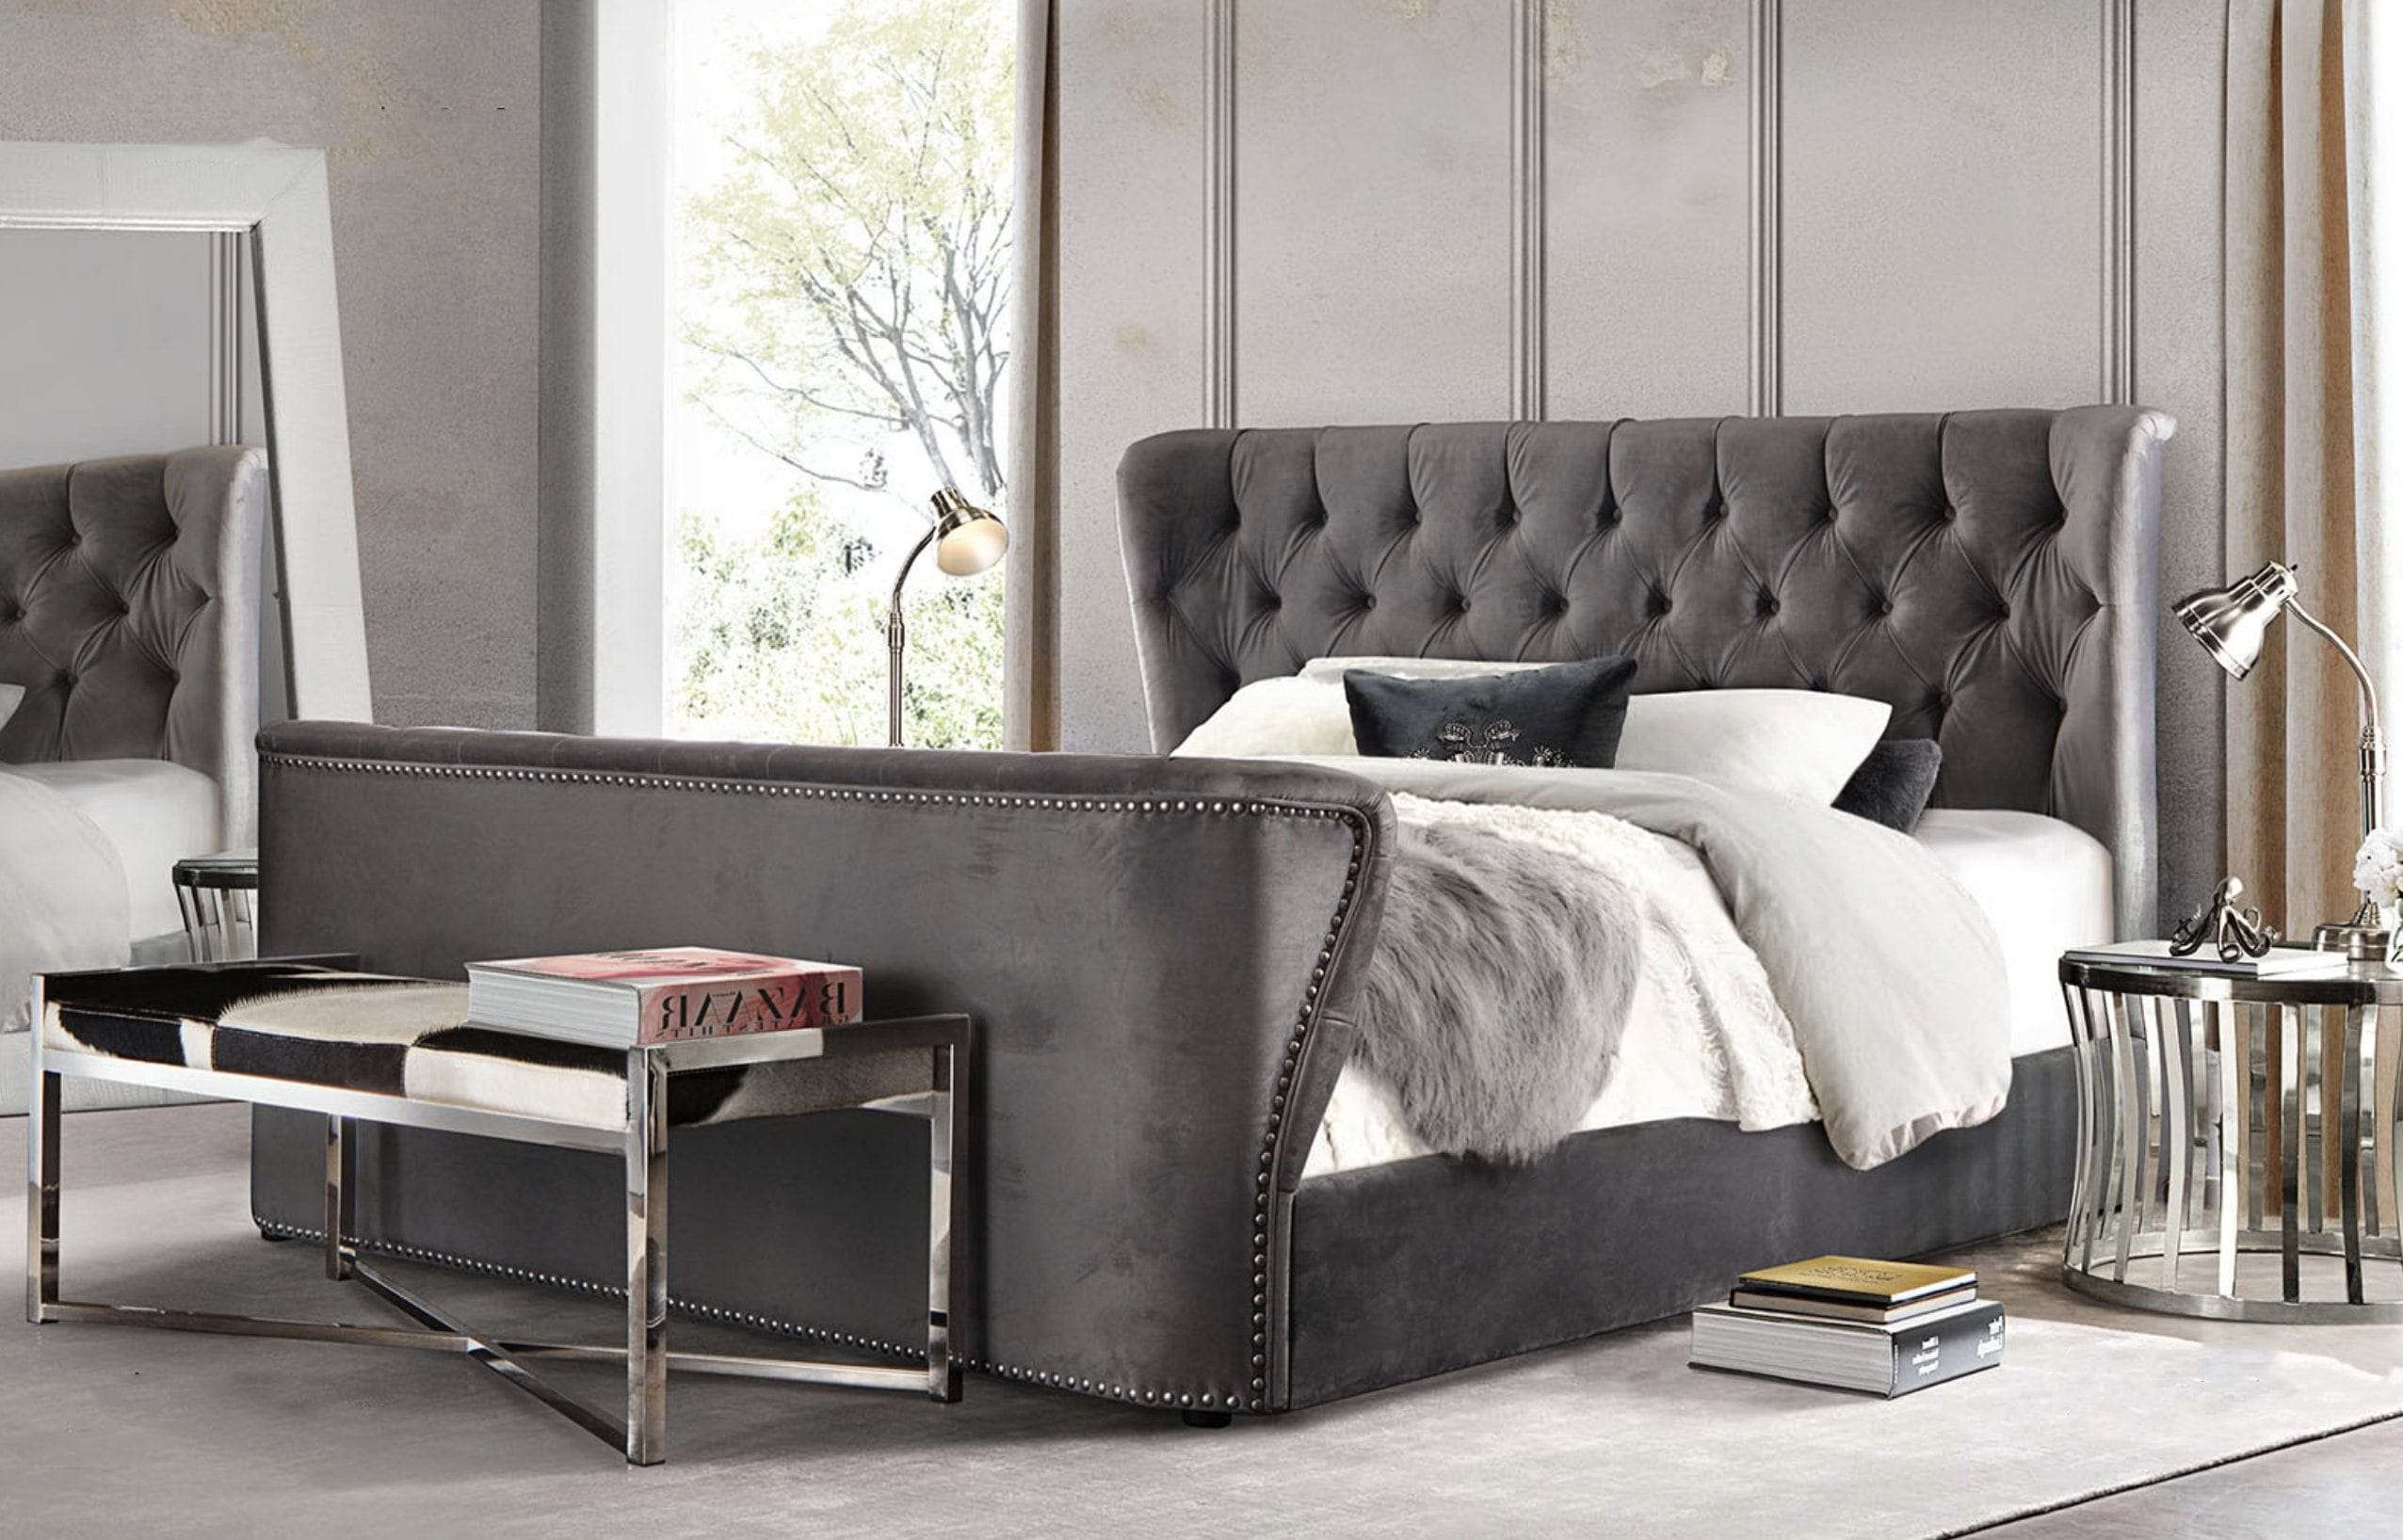 56 Grey Fabric 92 Queen Bed Exclusive At Hunters Furniture,Lighting Ideas Over Dining Room Table